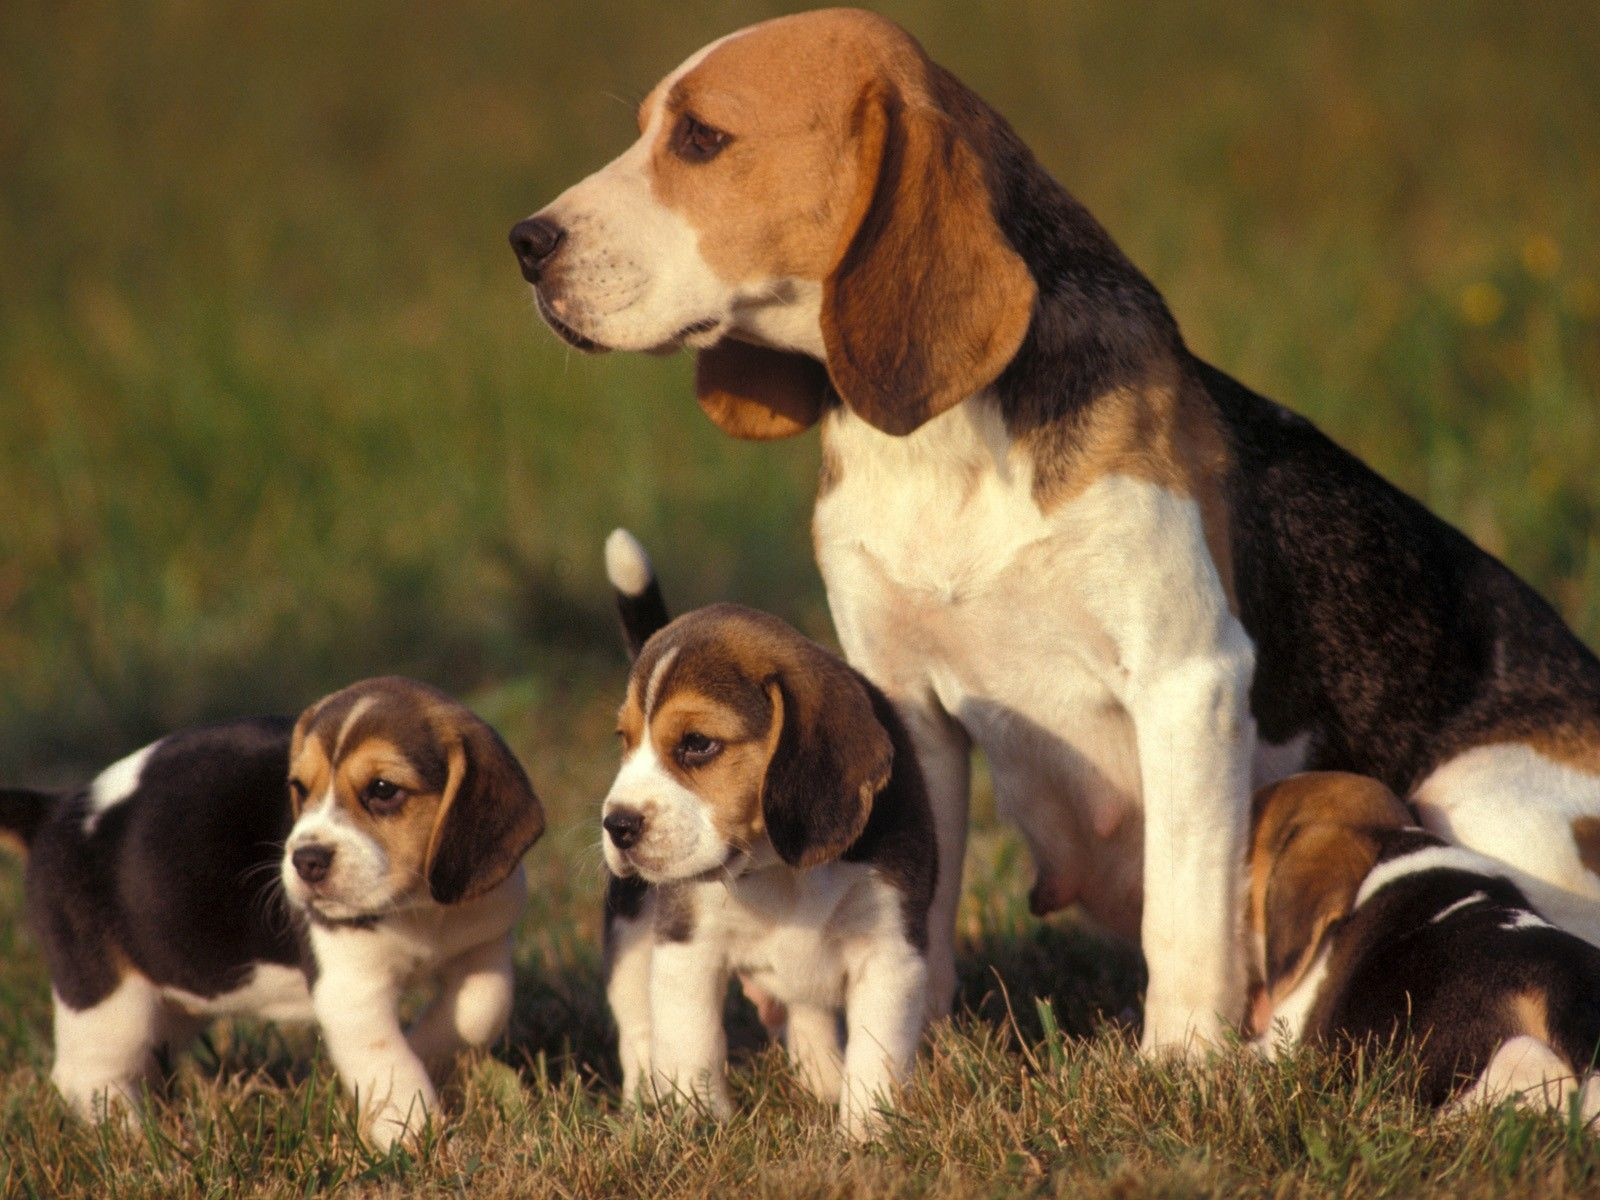 Types Of Beagles According To The American Kennel Club There